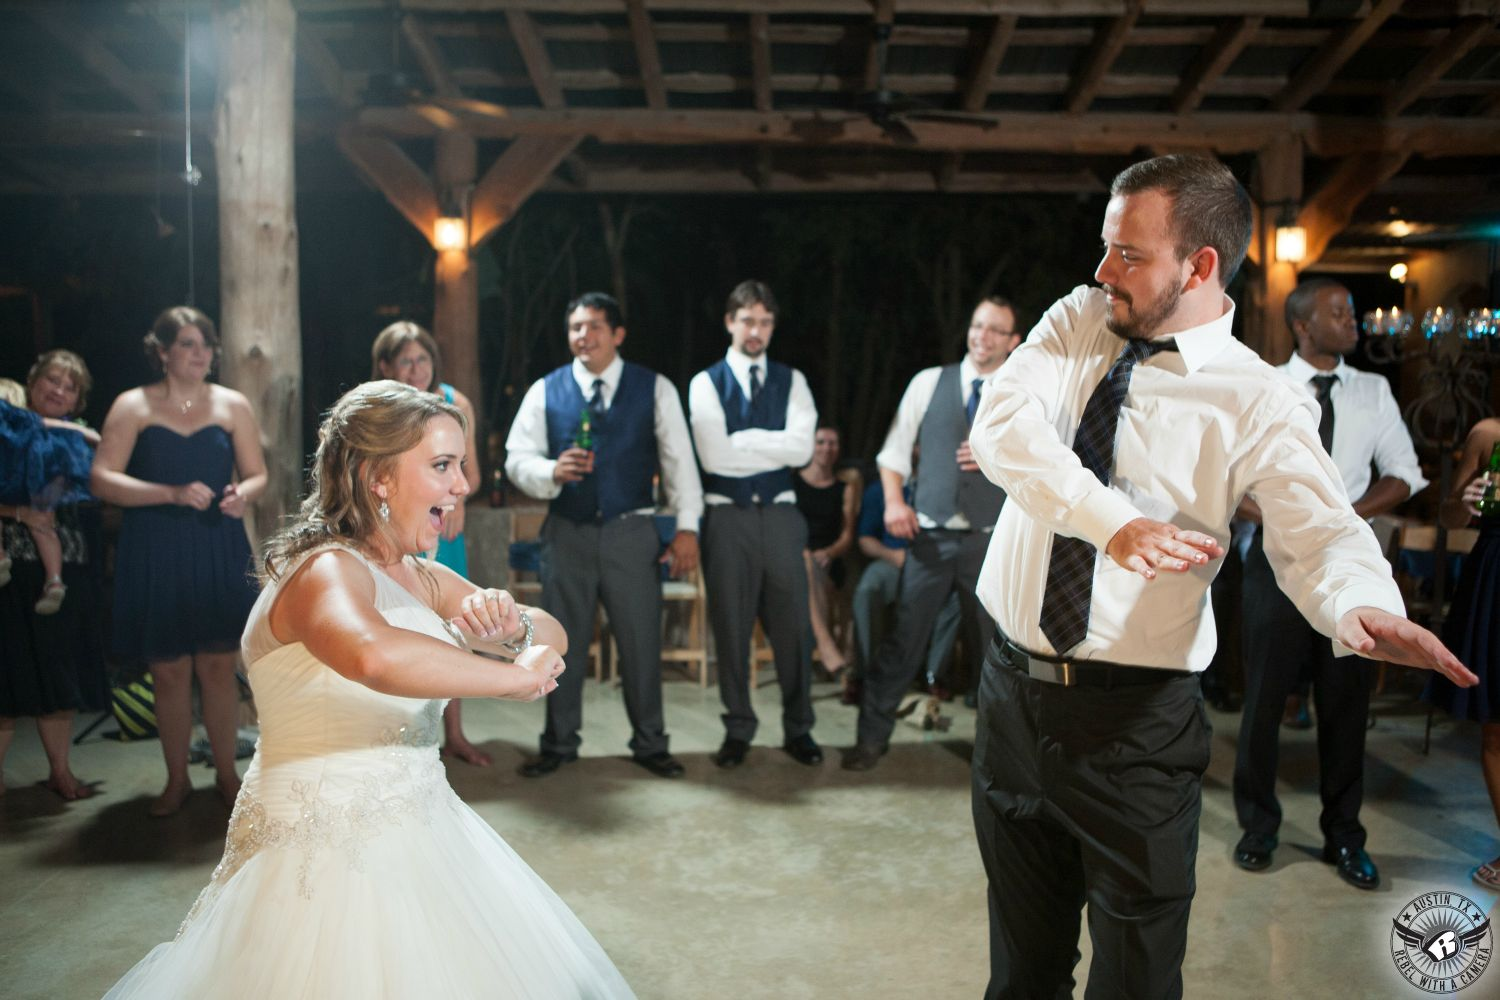 Wedding Picture Of Bride In Sparkly One Shoulder Gown And Her Brother Dance During The